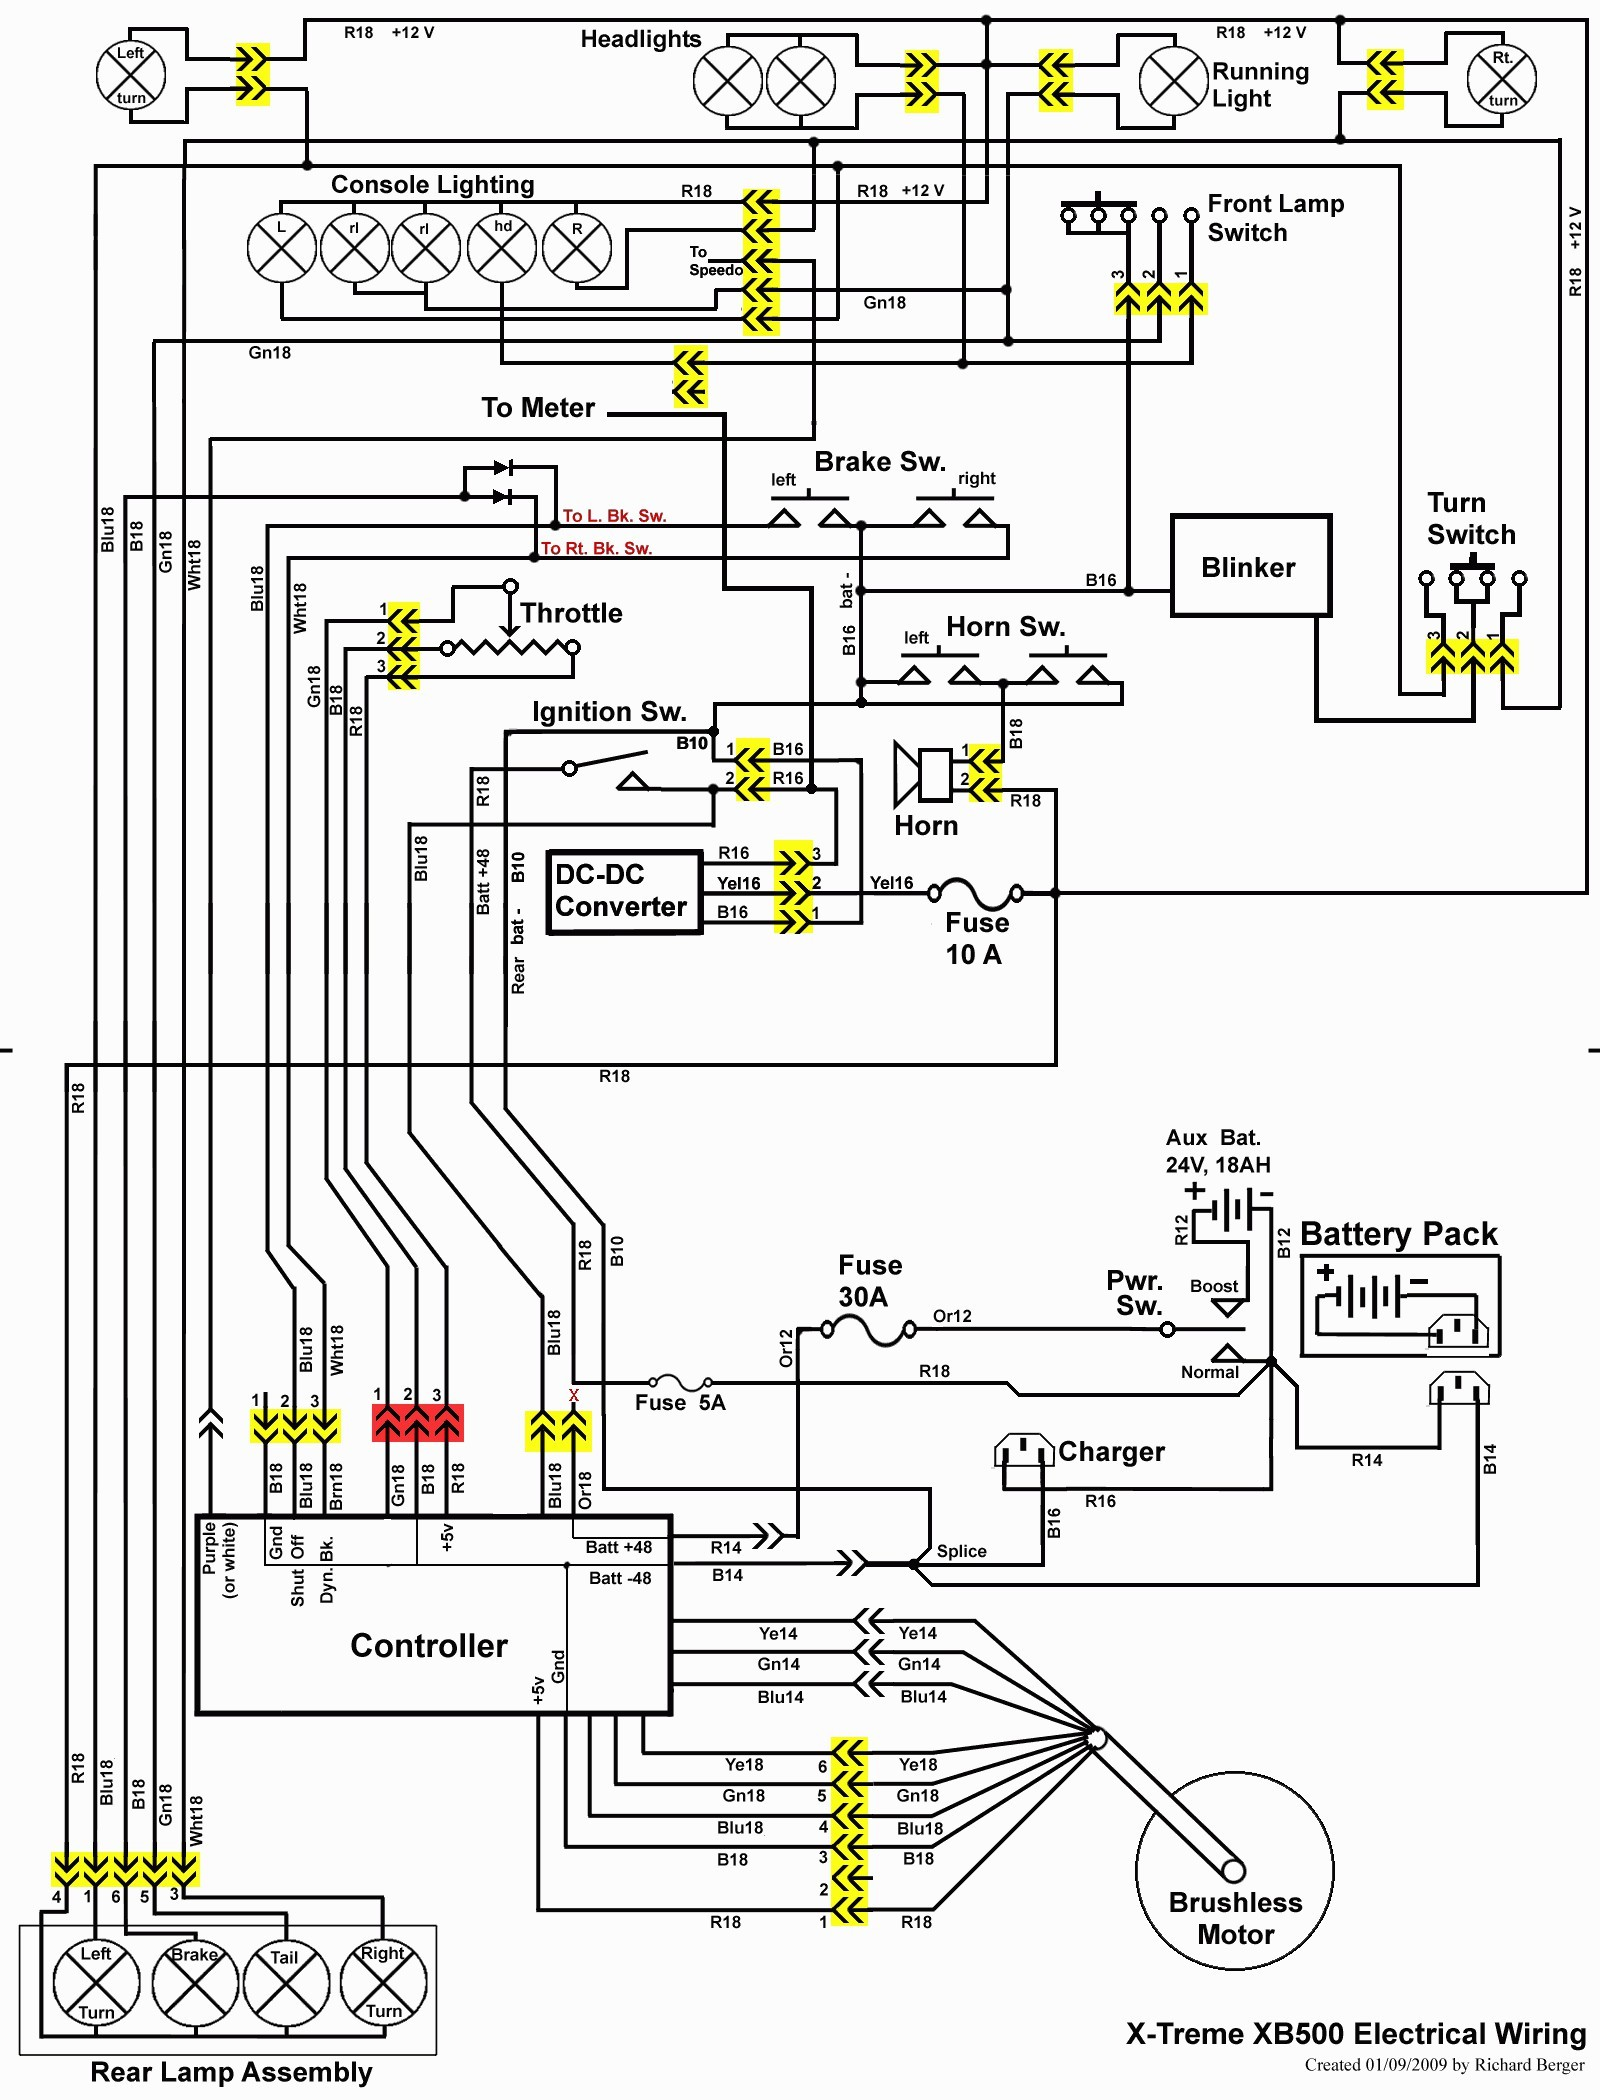 hight resolution of 48 volt 2003 club car wiring diagram dsl model electrical wiring yamaha golf cart 36 volt